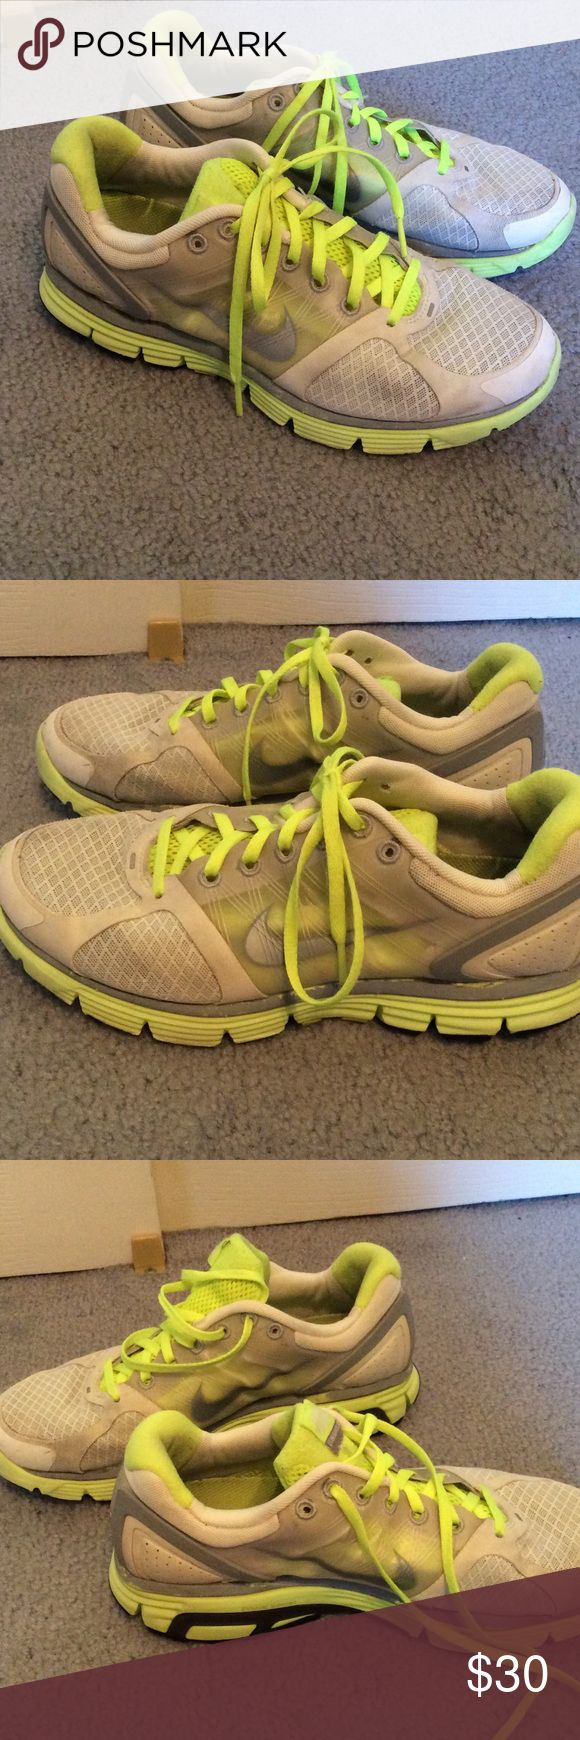 Nike LunarGlide 2 Nike Lunar Glide 2 tennis shoes. These have plenty of life left. Only walked in, never ran in. Minor wear, no rips or holes. Size 8.5. Very comfortable and have dynamic support. Neon yellow and silver, great for running at dawn or dusk. Nike Shoes Athletic Shoes